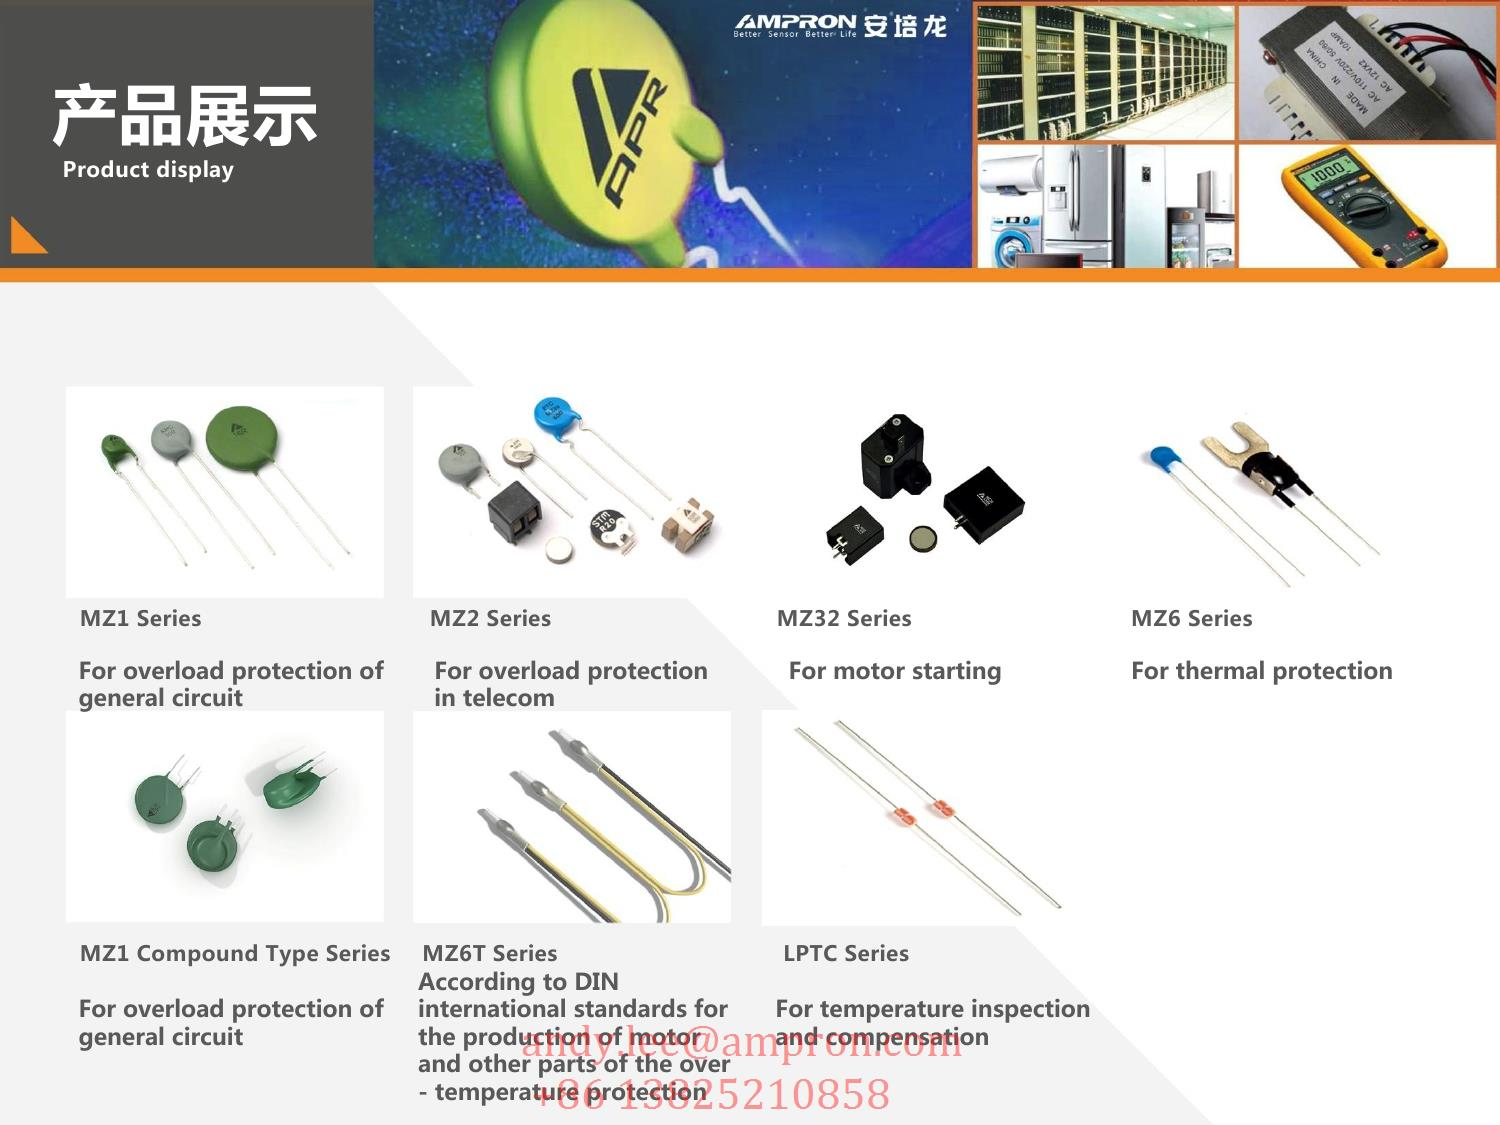 Mz32 Ptc Thermistor For The Motor Start Applied In Air Conditioner Circuit Off Starting Product Features 1 Mz32divided Into Three Typea Chip Typeb Housing Type C Coating 2 Withstanding Voltage120v 500v